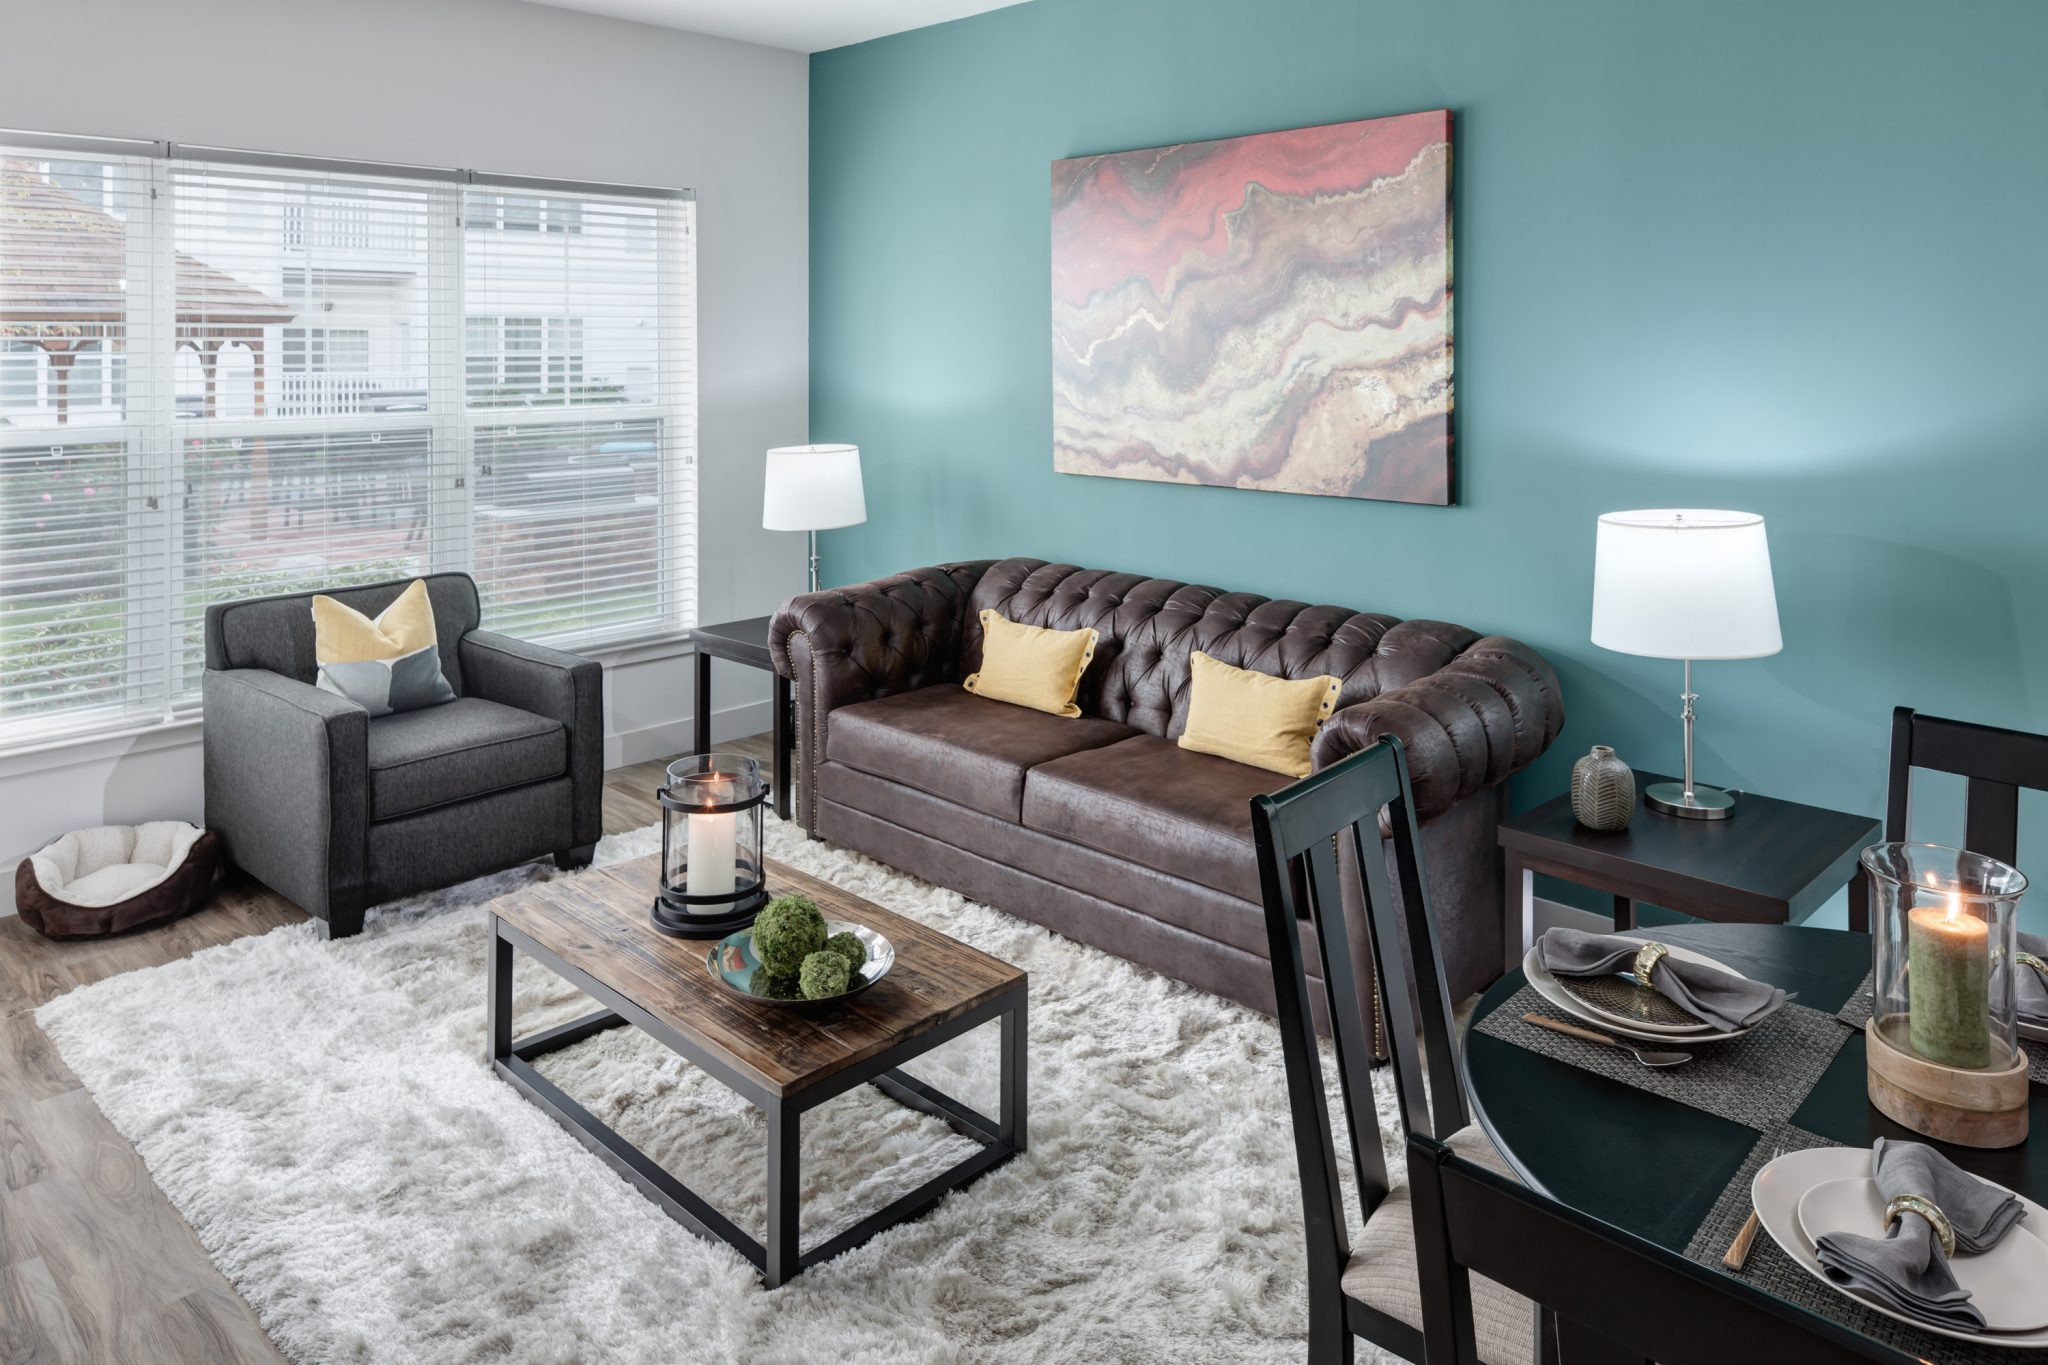 Interior of apartment living room and dining area.